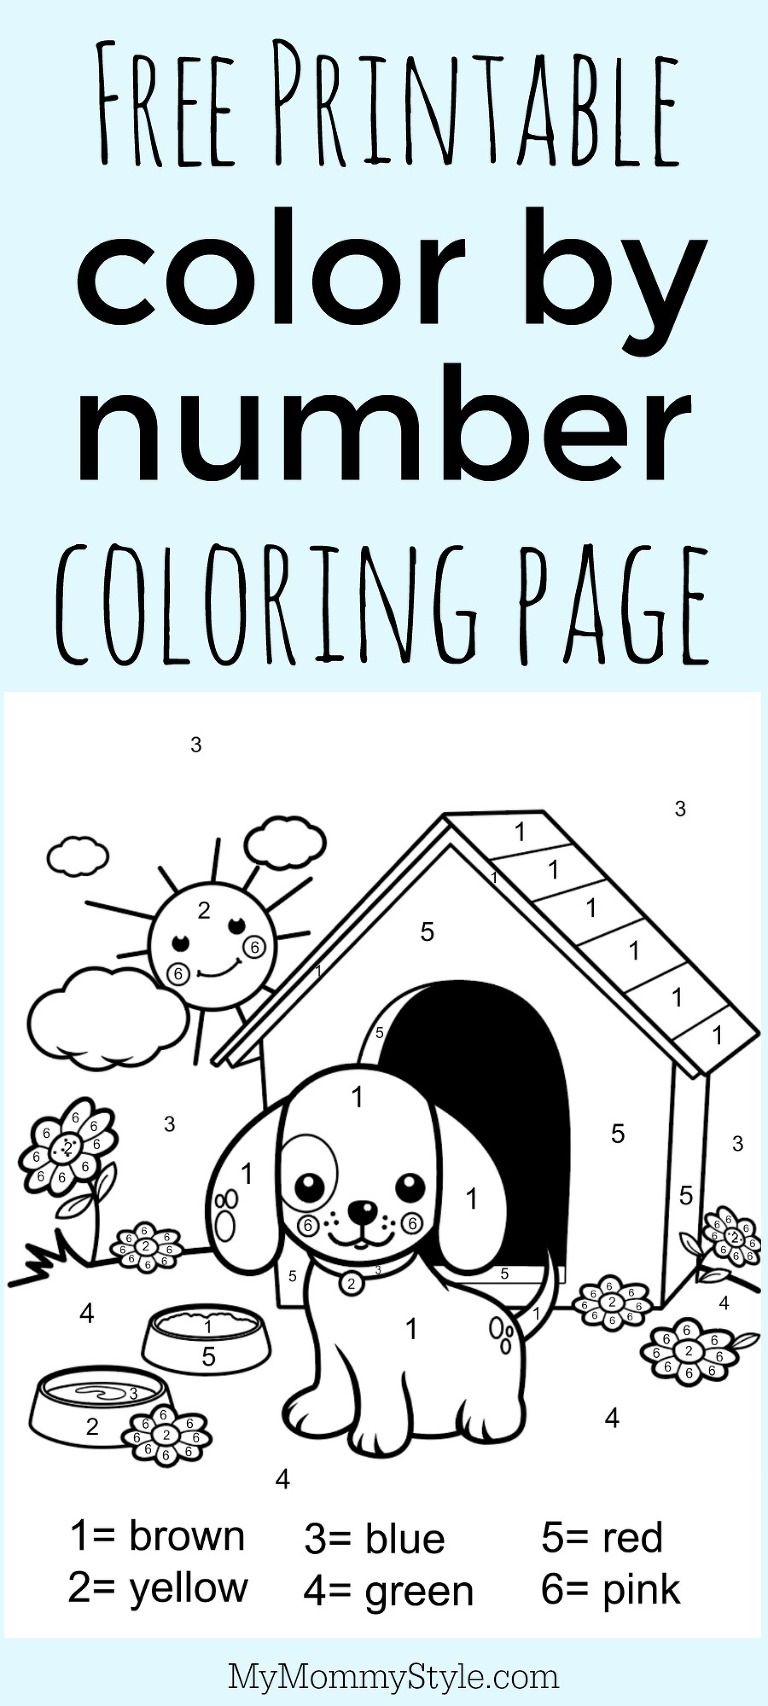 image relating to Color by Numbers Free Printable named Colour by means of amount coloring website page no cost printable - My Mommy Layout